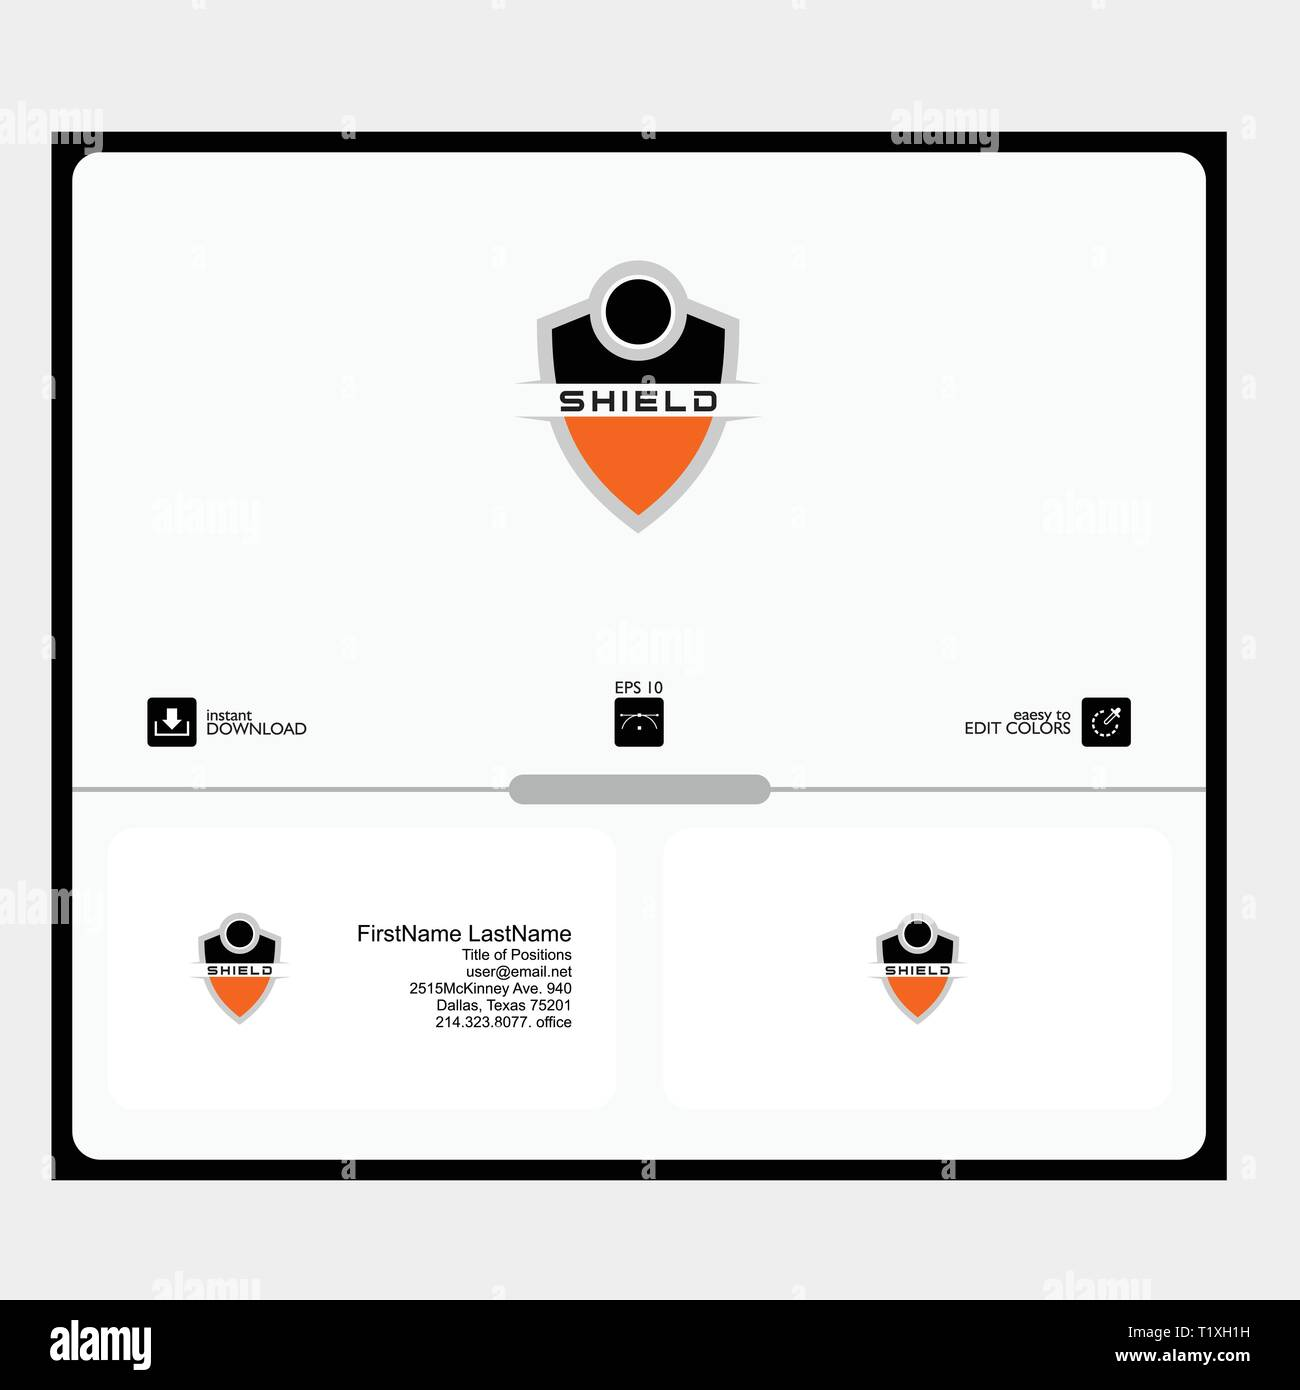 shield logo consept for scurity product sofwere can used in the web logo, themplate, flayer, id card, name card, evtor file - Stock Vector